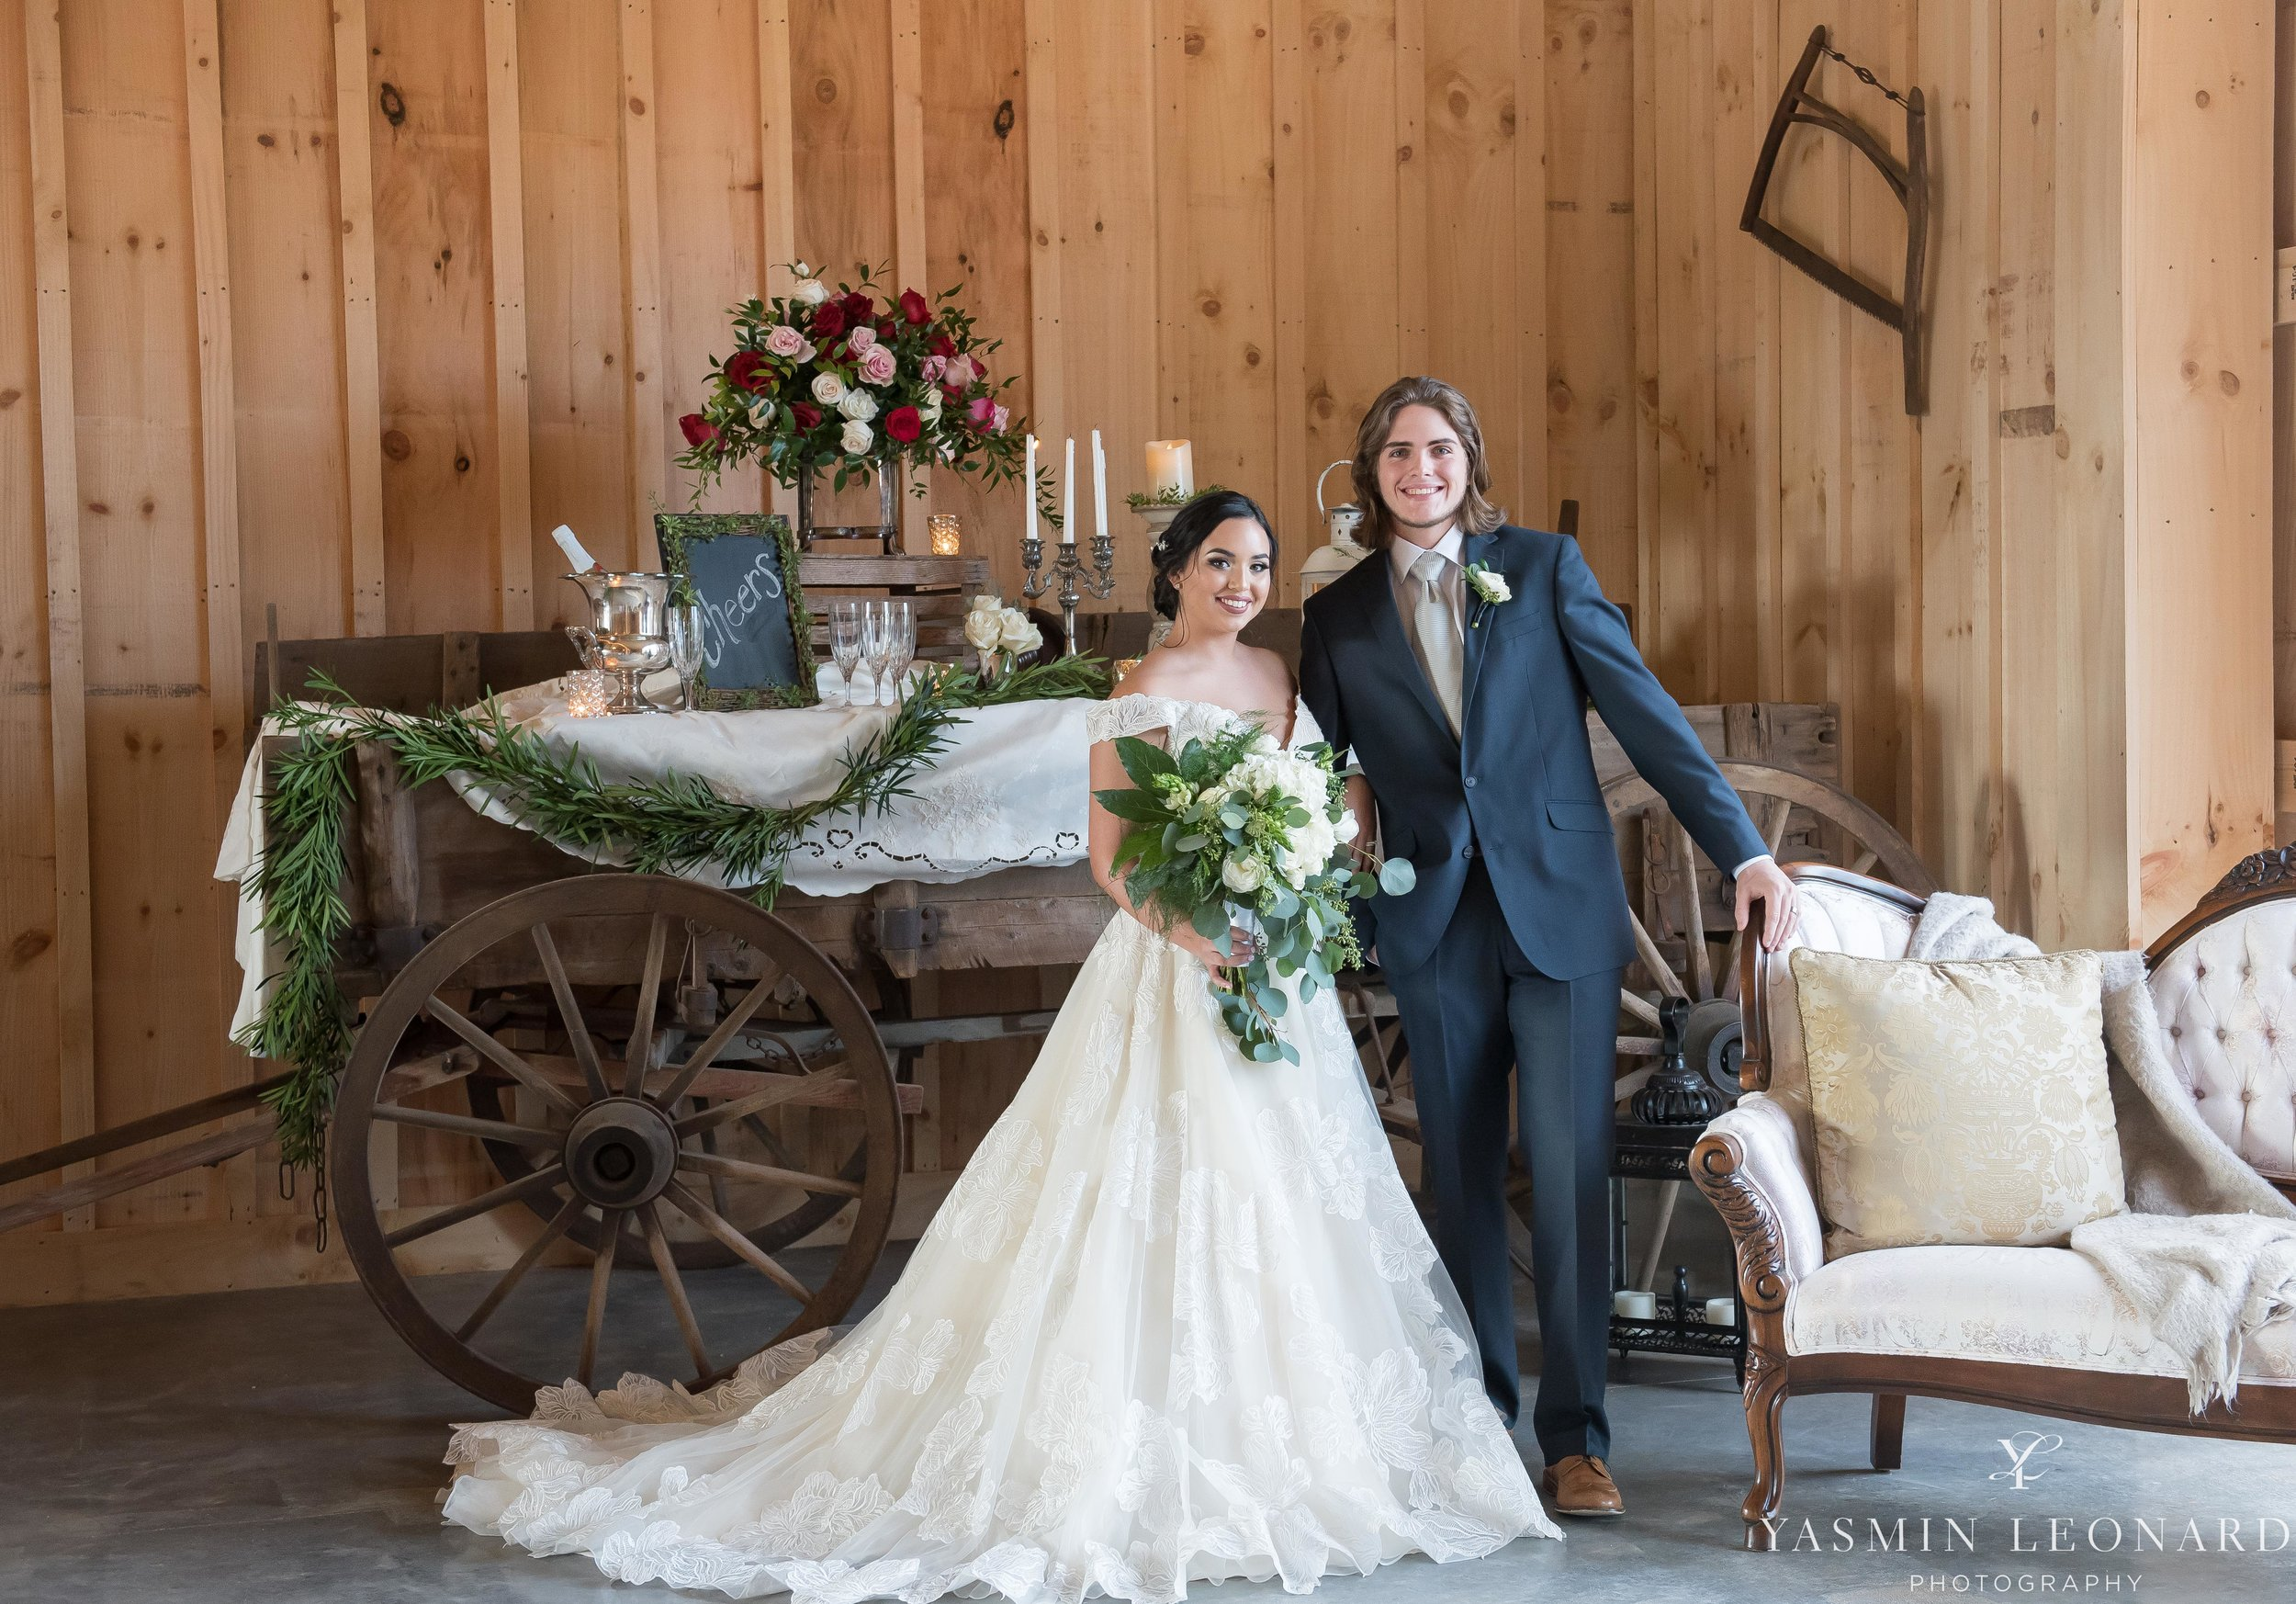 Old Homeplace Vineyard - Grits and Glitter - Dashing Dames Bridal Boutique - Just Priceless - Yasmin Leonard Photography - High Point Weddings - NC Weddings - NC Wedding Venues - High Point Jewelers - NC Wines - NC Vineyards - Cupcake Cuties-50.jpg